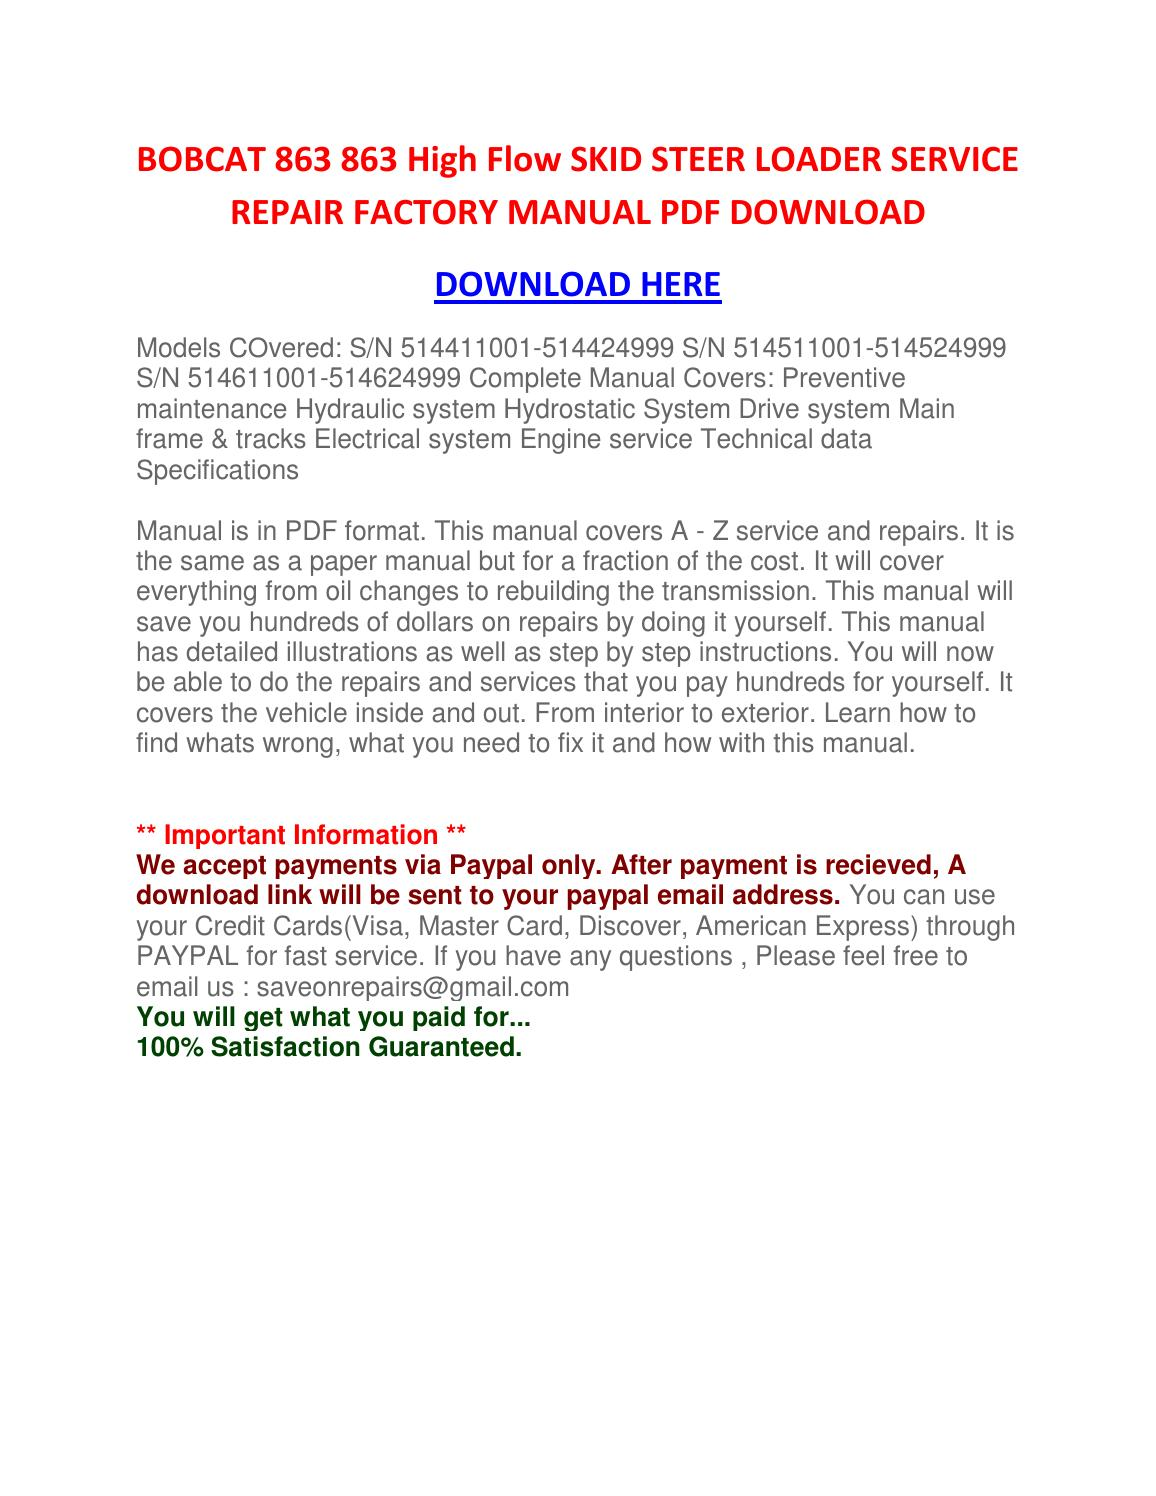 bobcat 863 service manual download